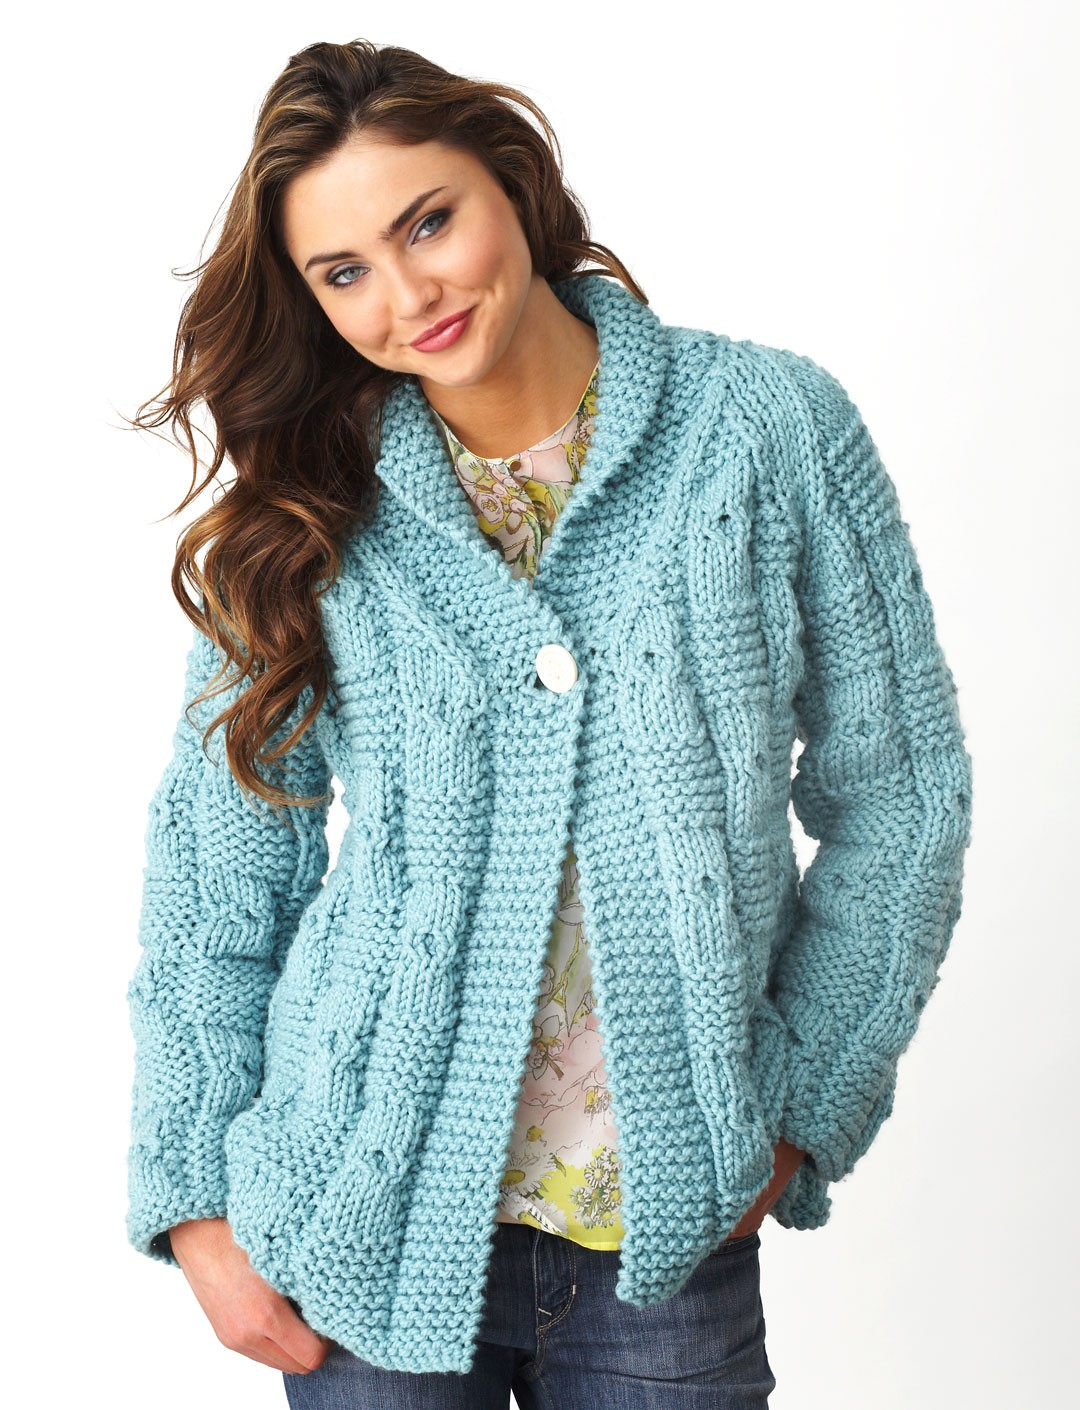 Knitting Patterns For Chunky Wool Cardigans : Bernat Textured Checks Cardigan, Knit Pattern Yarnspirations